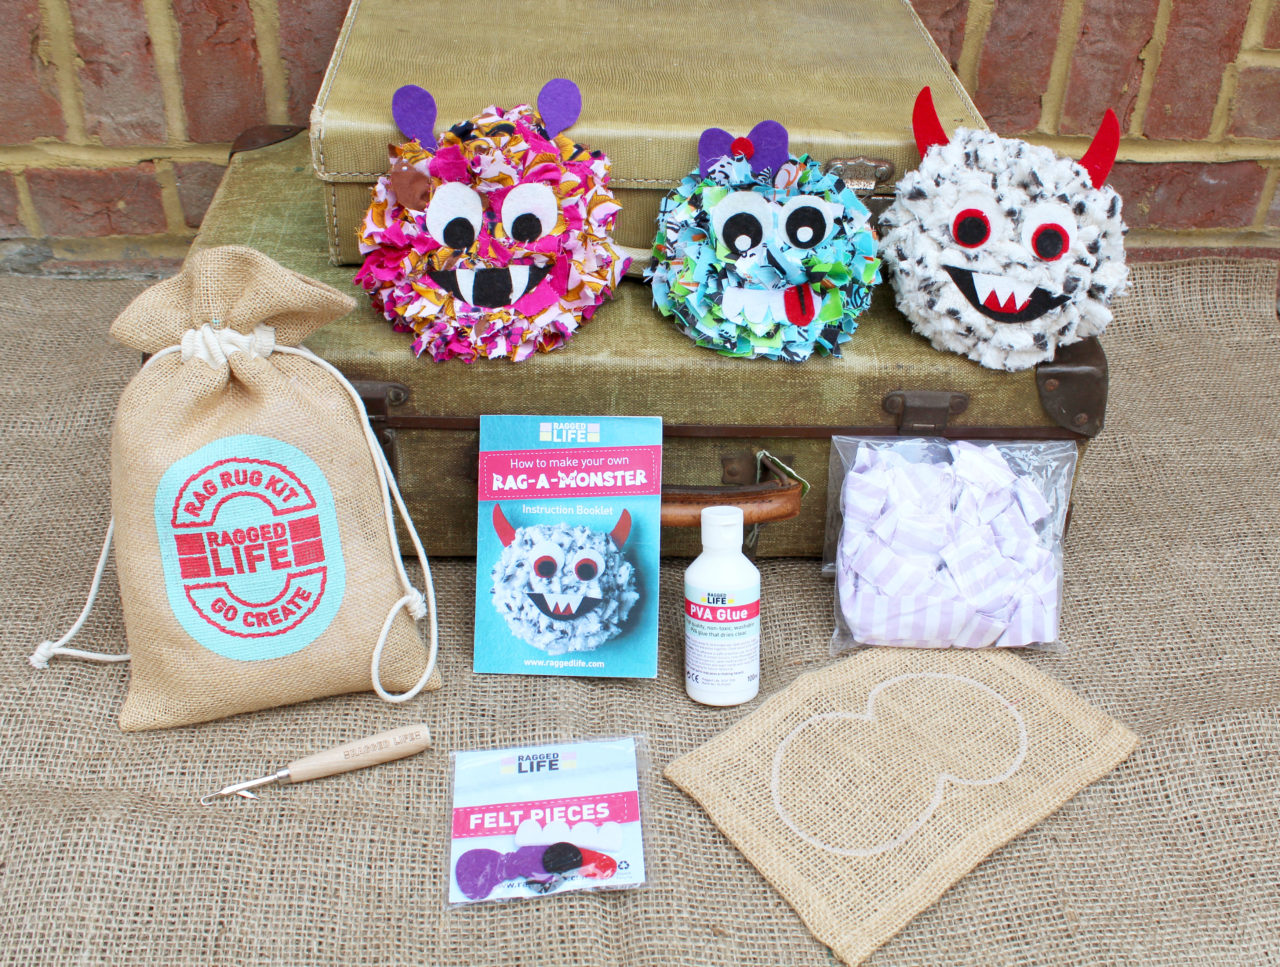 Ragged Life Children's Fabric Craft Kit